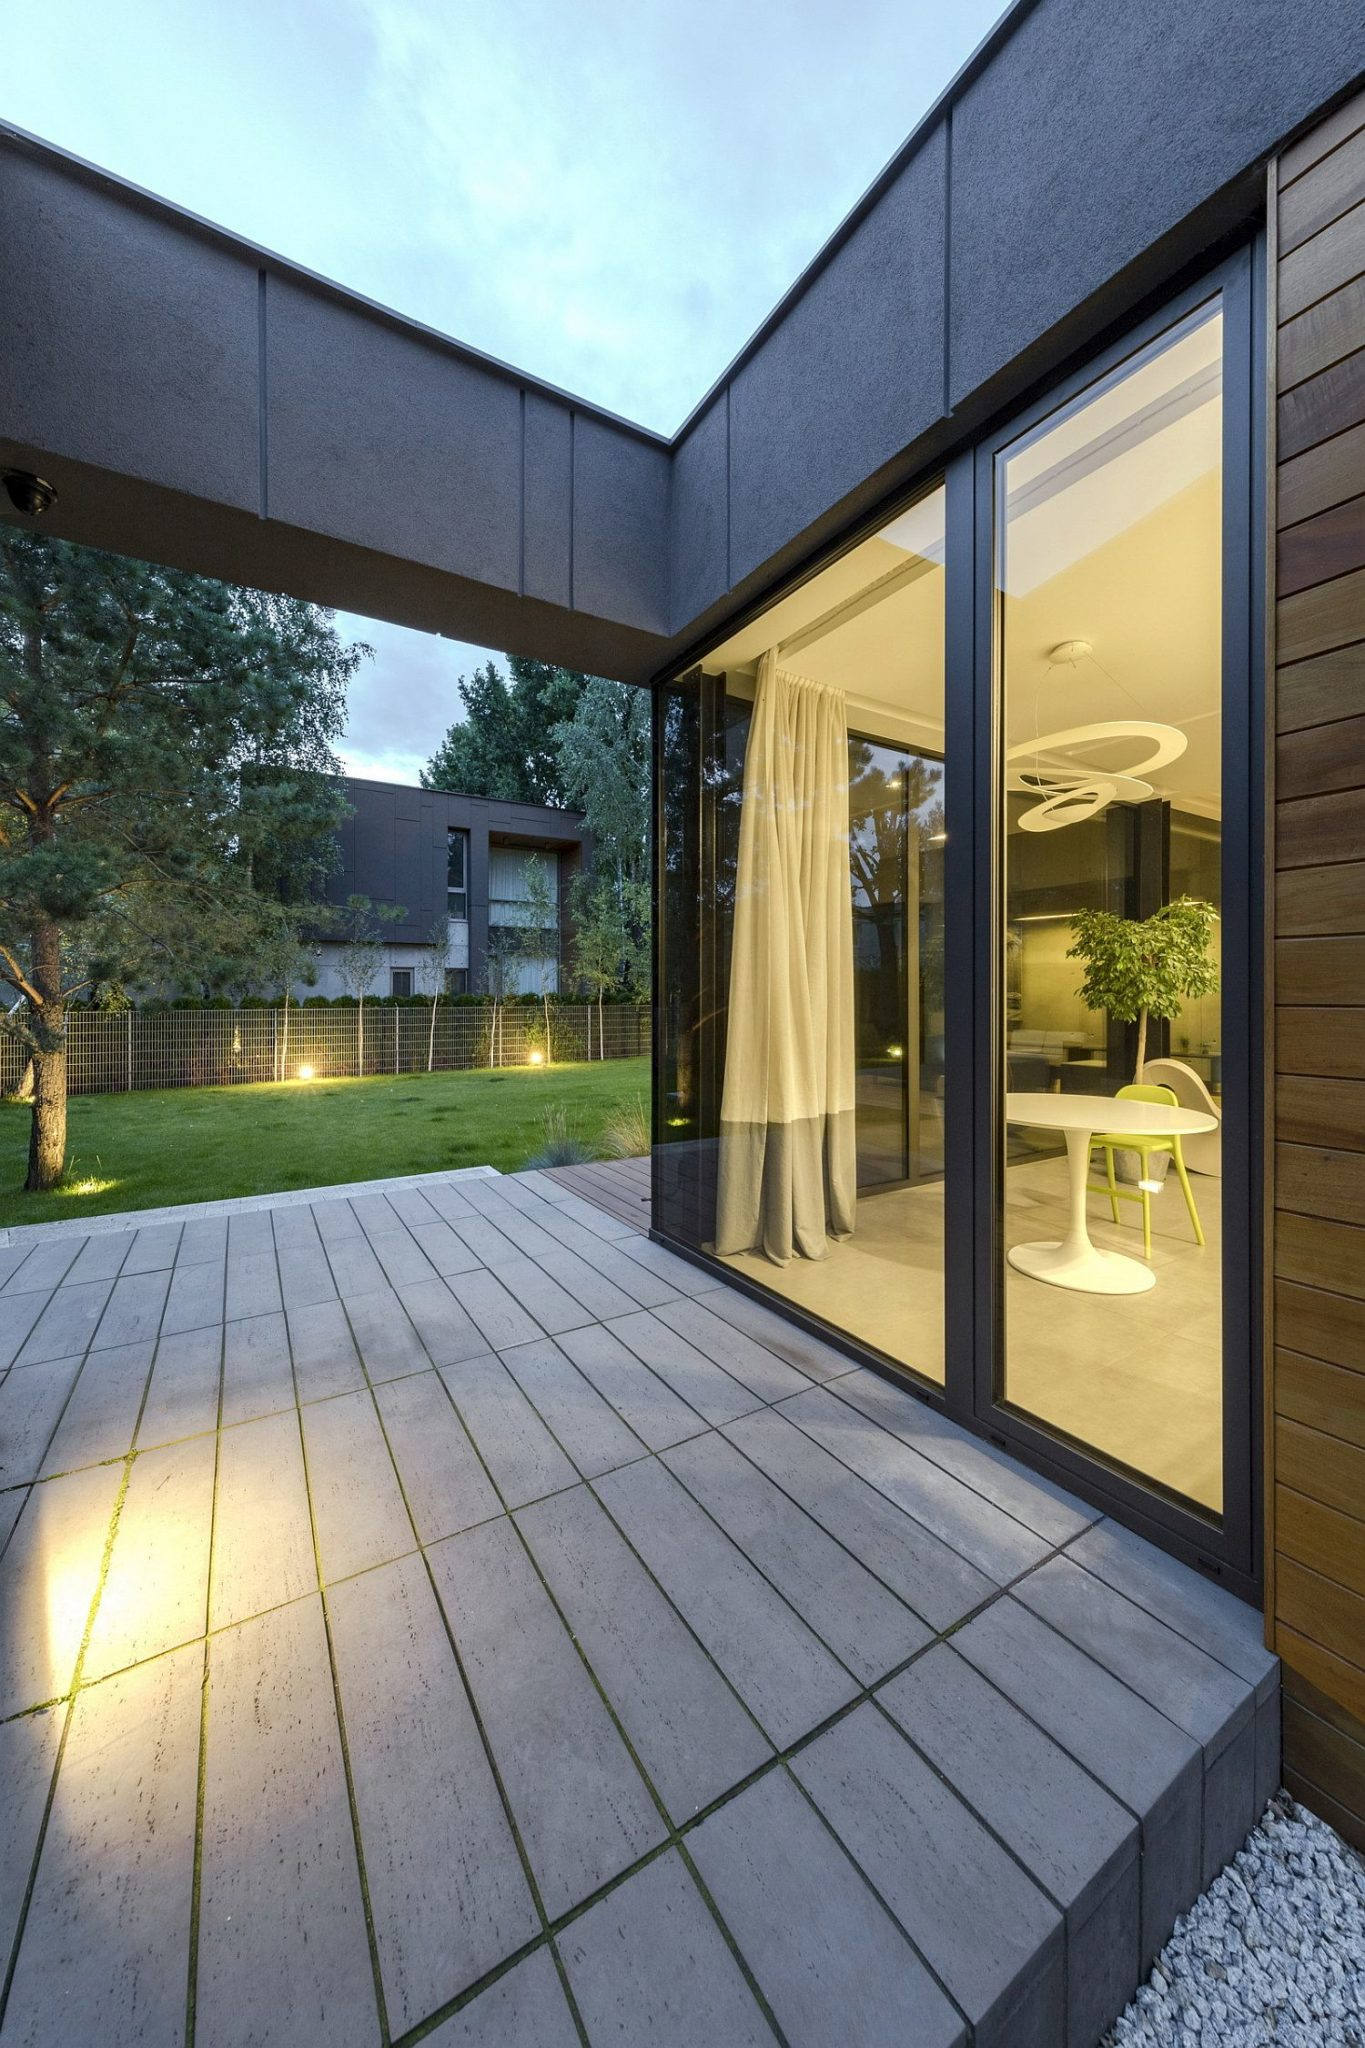 Simple-and-elegant-deck-connected-to-the-living-area-indoors